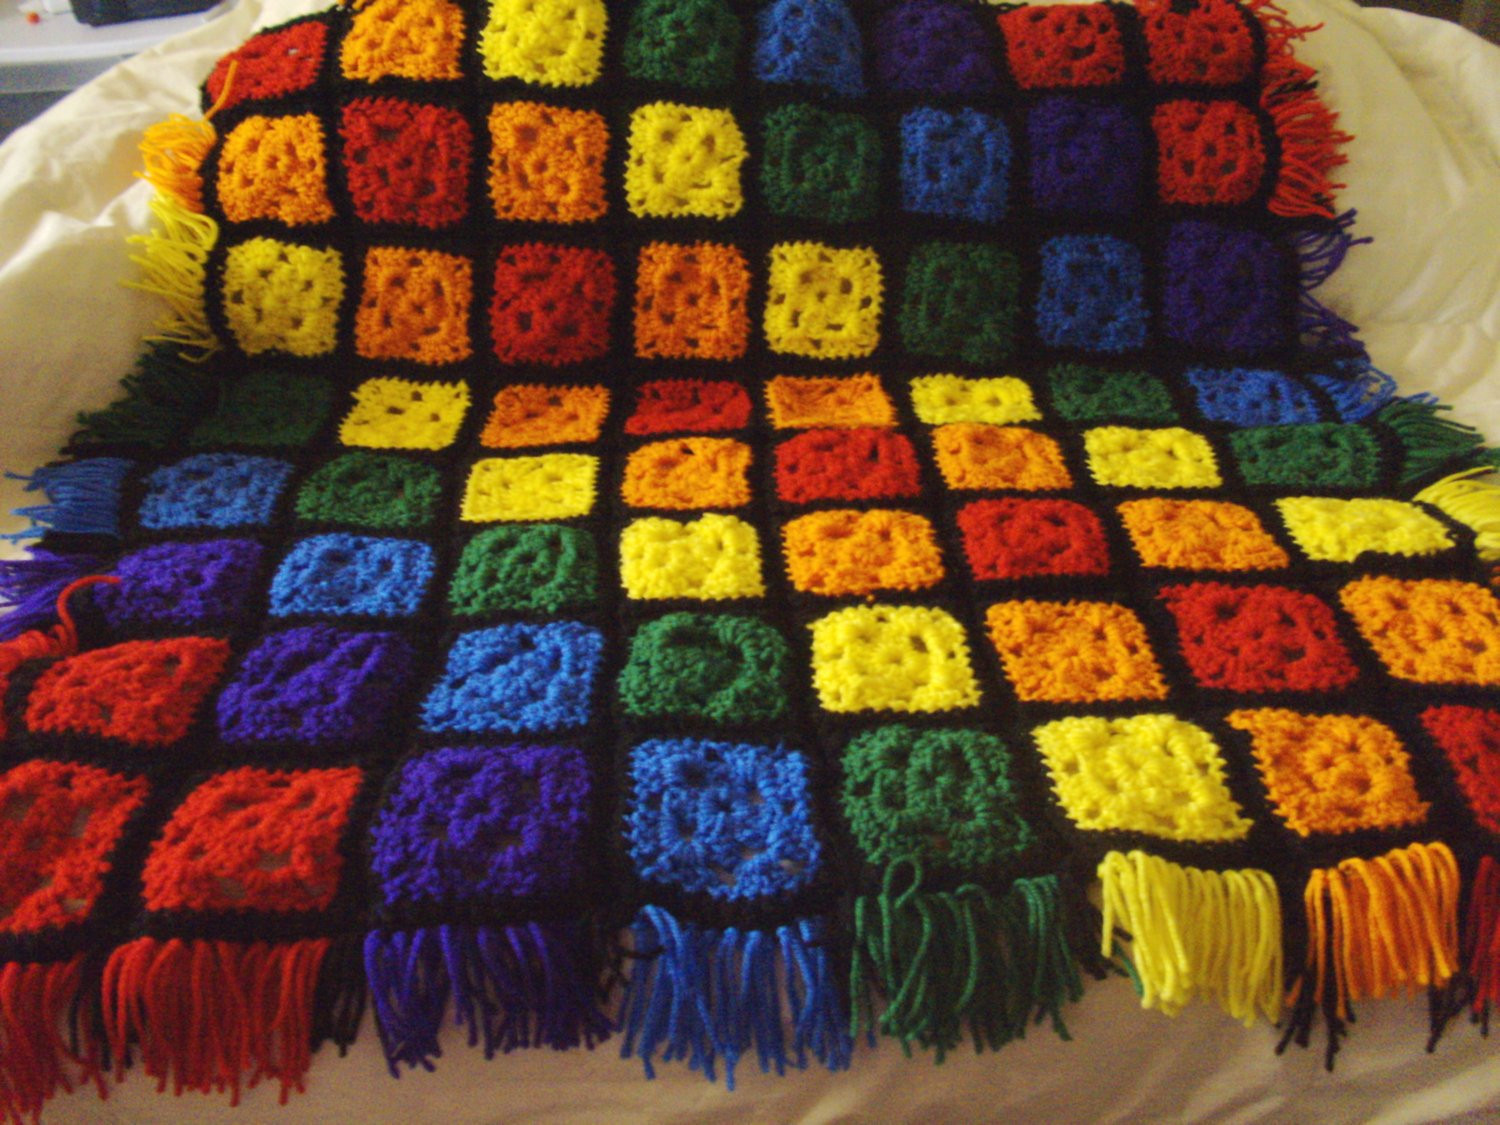 Rainbow Baby Blanket Fresh Rainbow Baby Granny Square Blanket Of Charming 42 Ideas Rainbow Baby Blanket